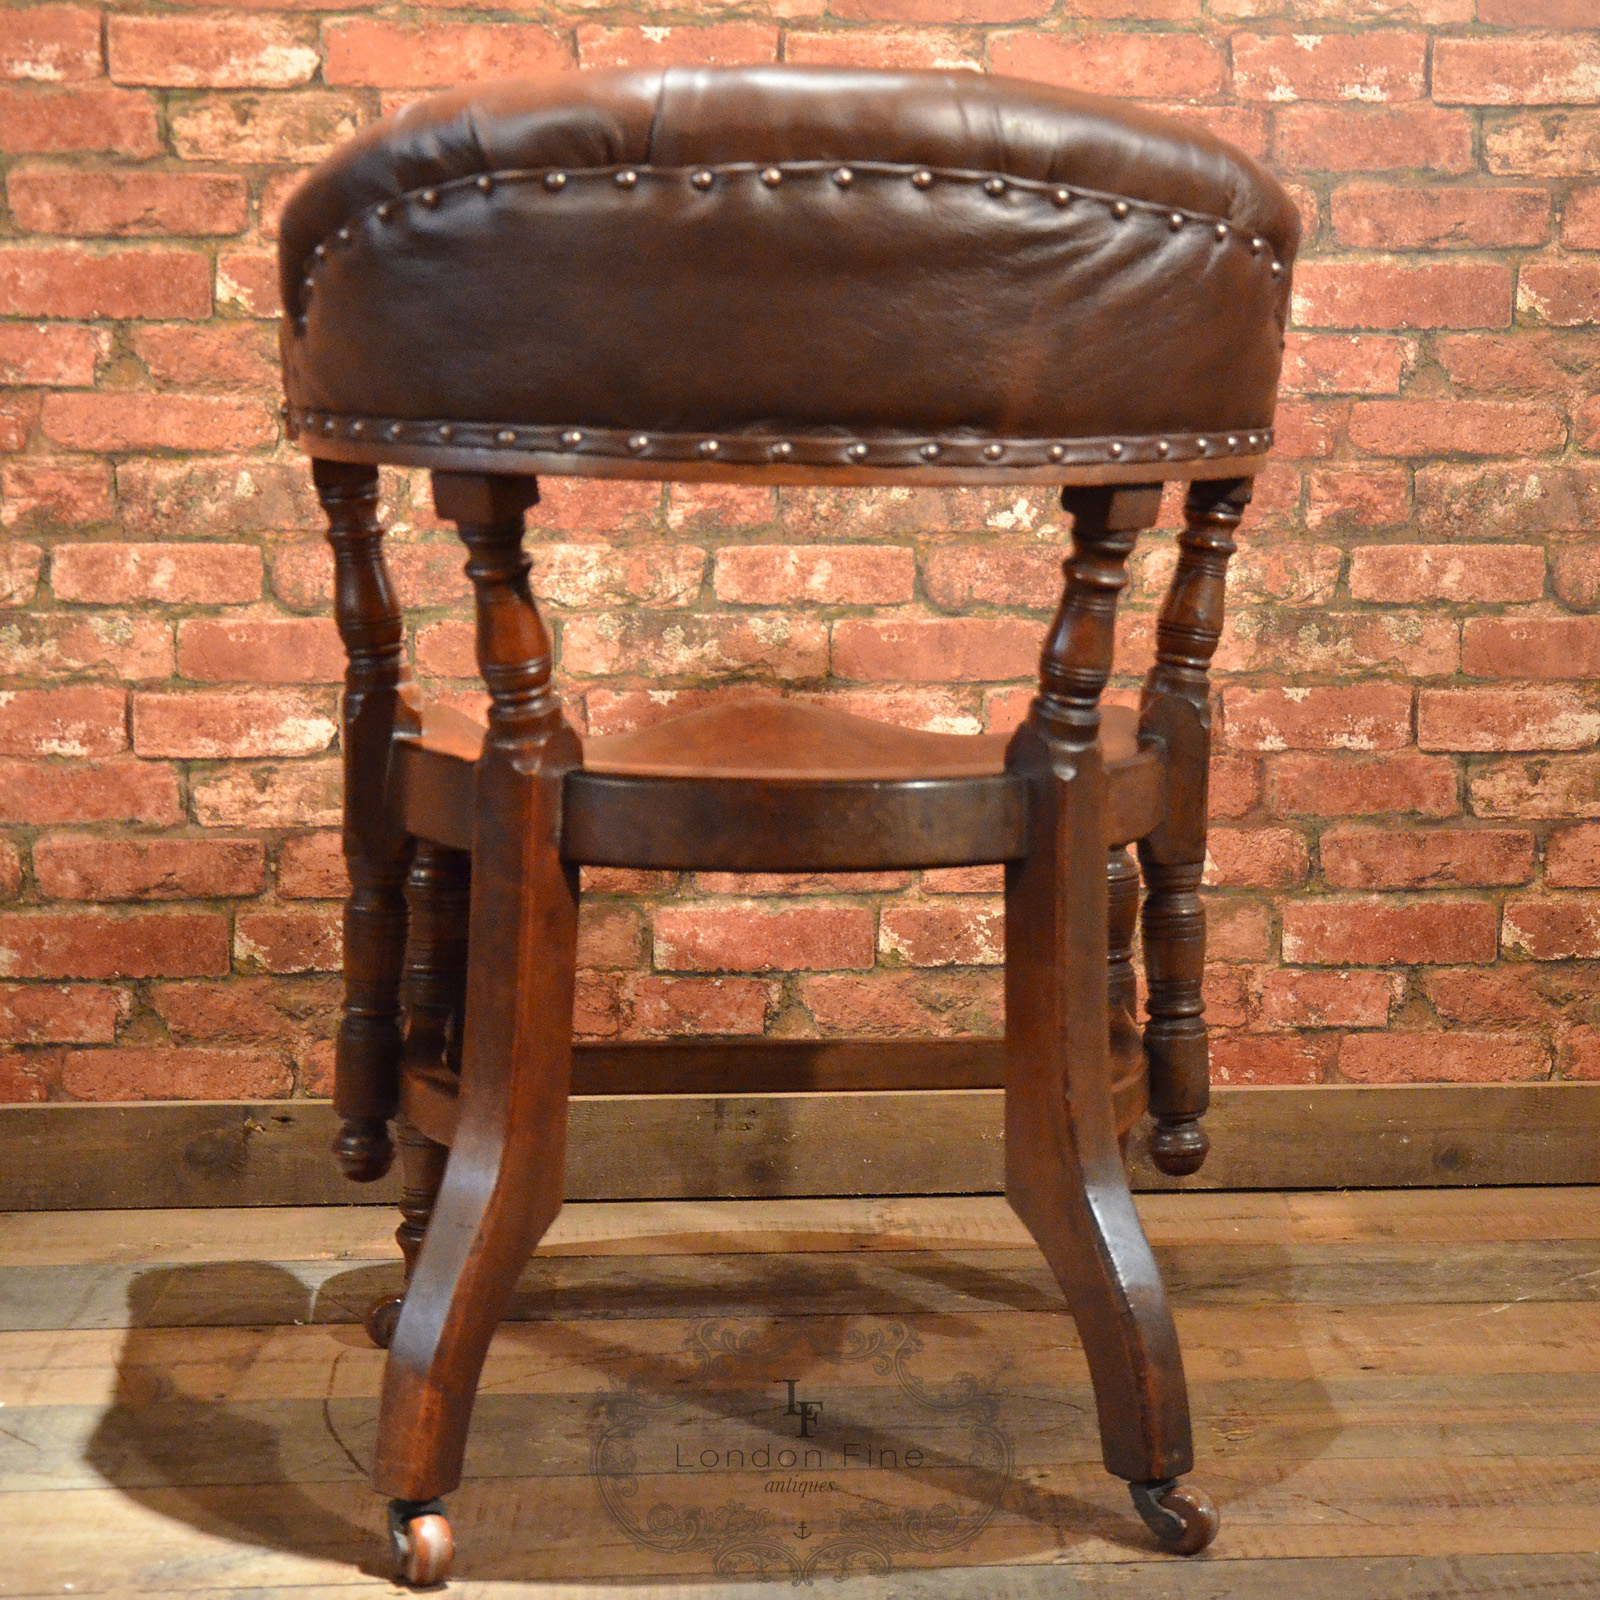 big chairs for sale chair cover hire melbourne western suburbs antique library mahogany brown leather hoop back